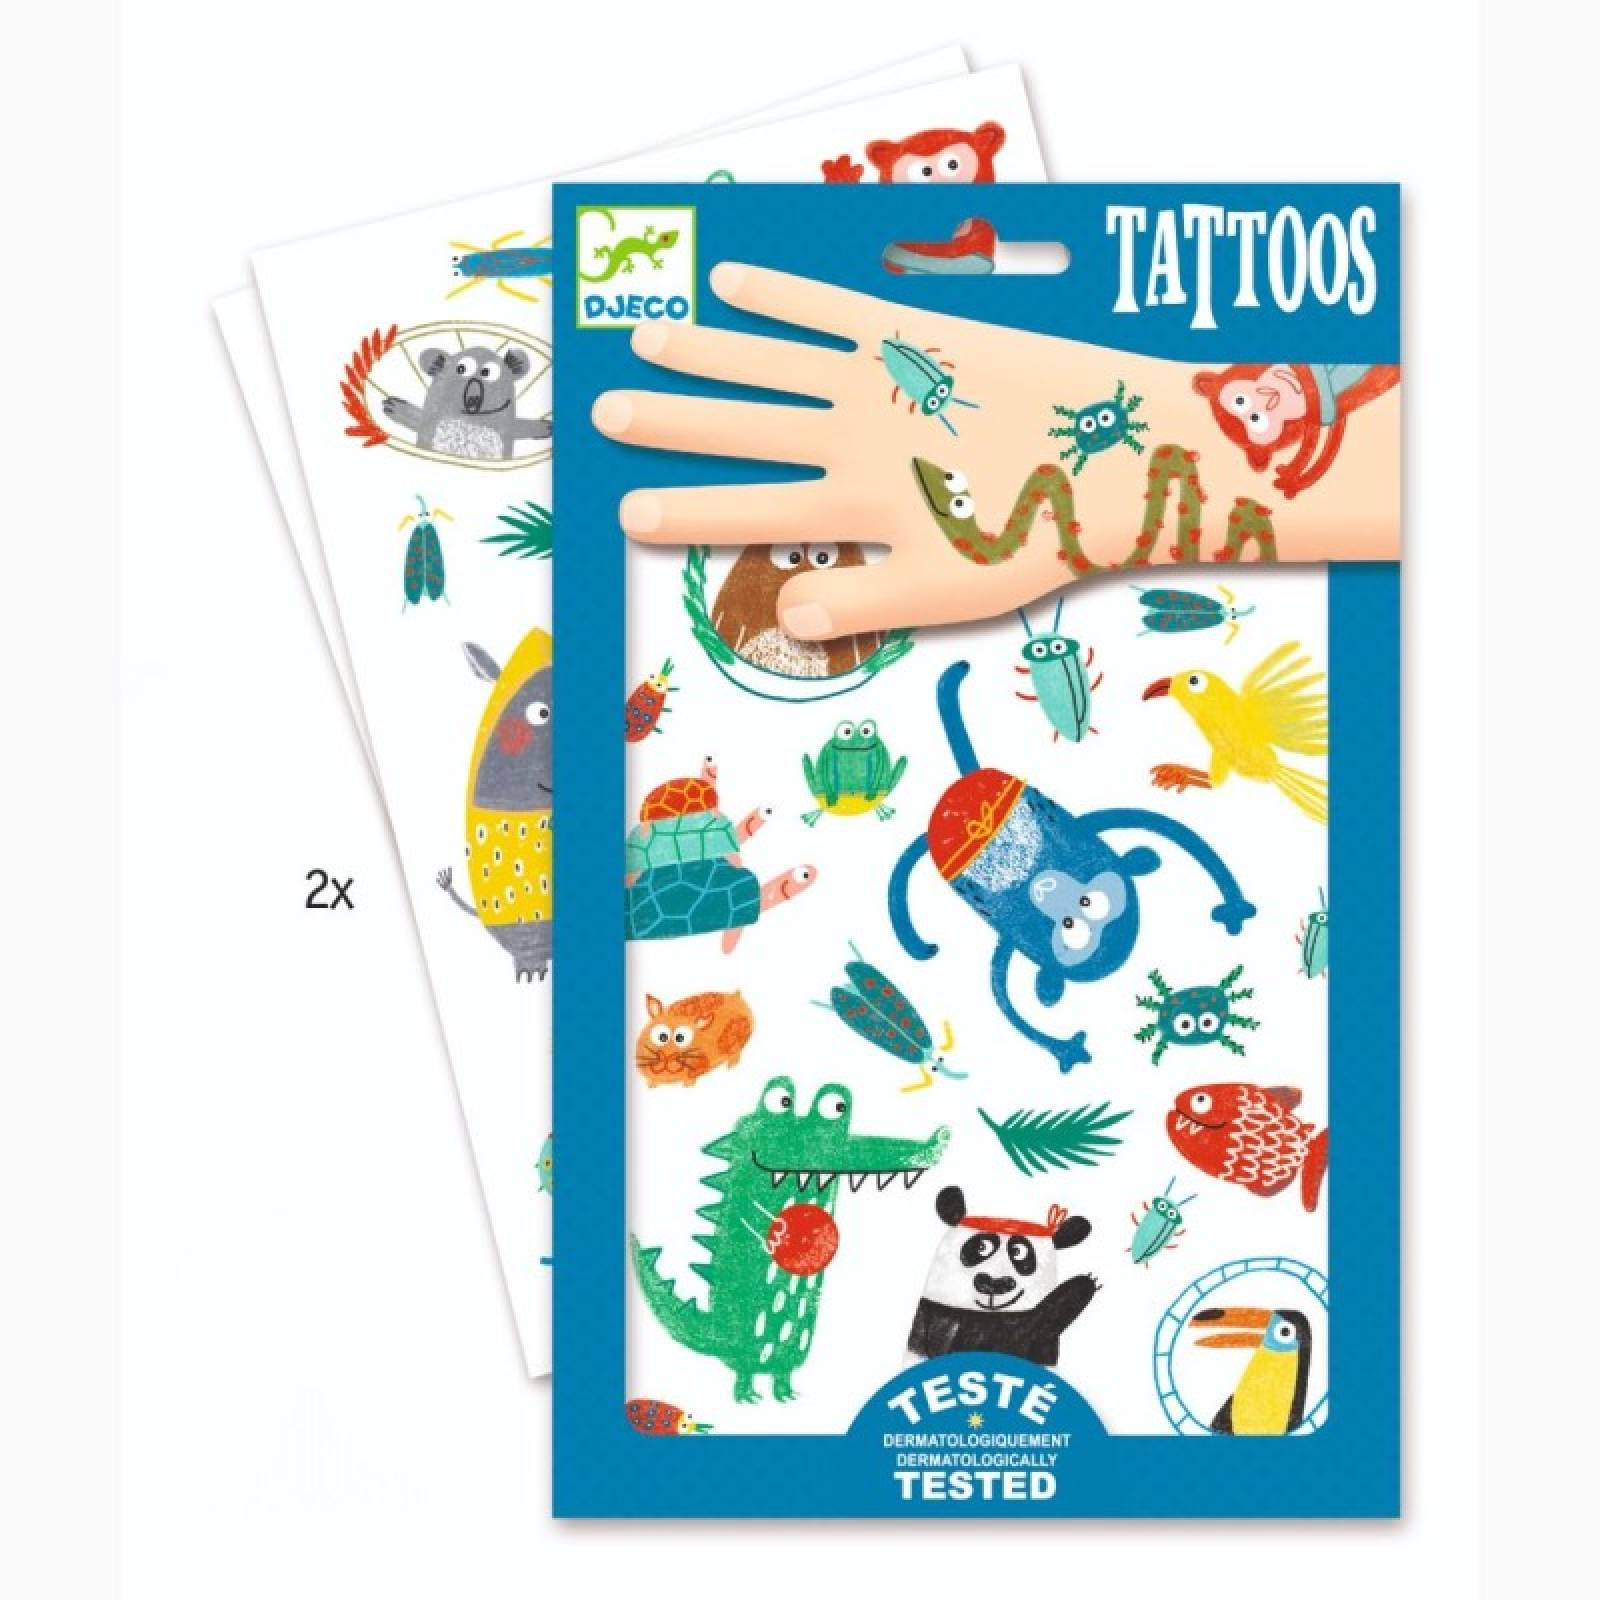 Snouts Temporary Tattoo Pack By Djeco 3+ thumbnails